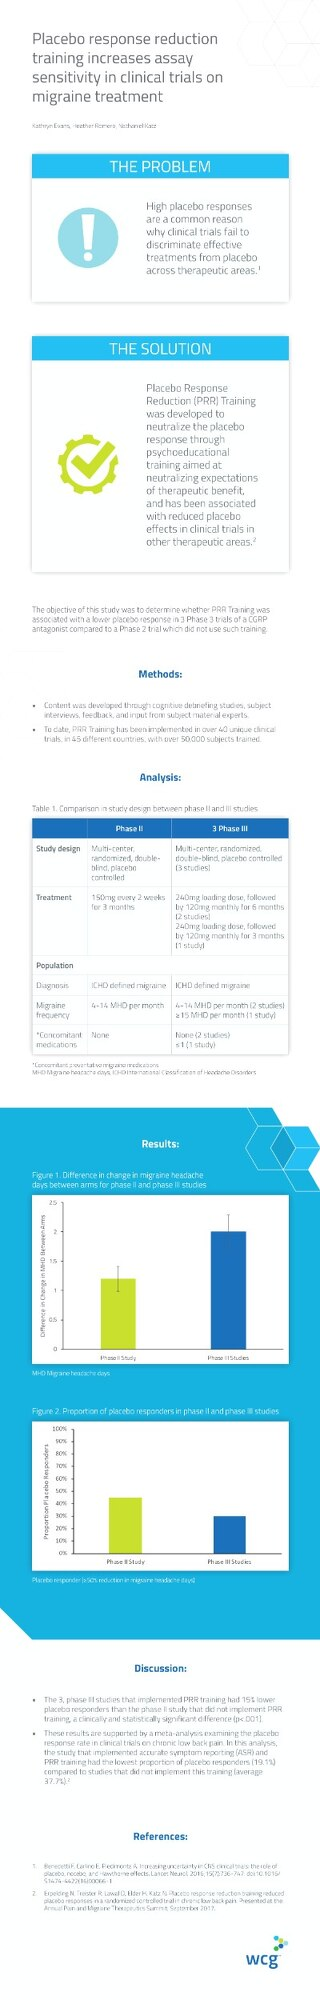 WCG's Placebo Response Reduction Training Poster